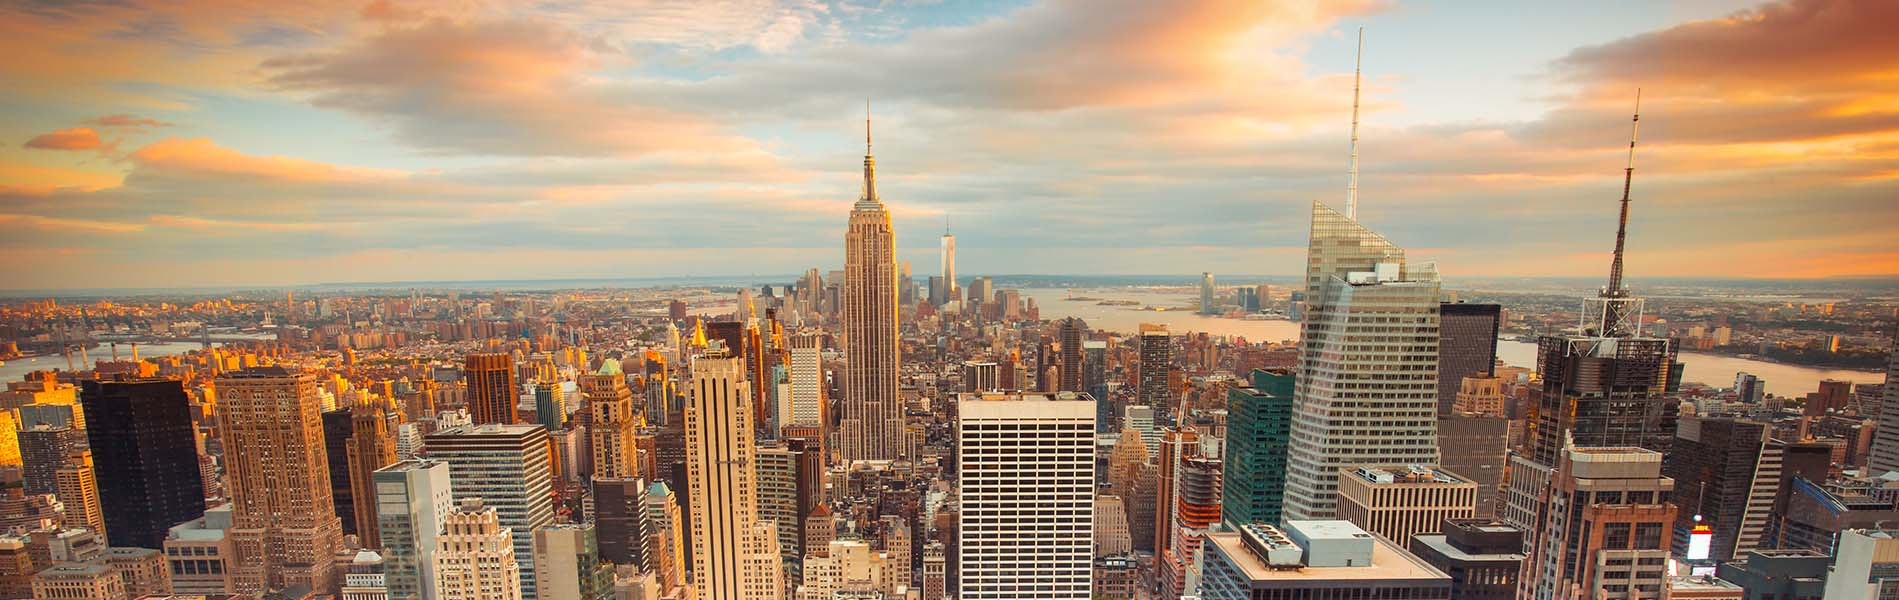 Commercial Real Estate in New York City